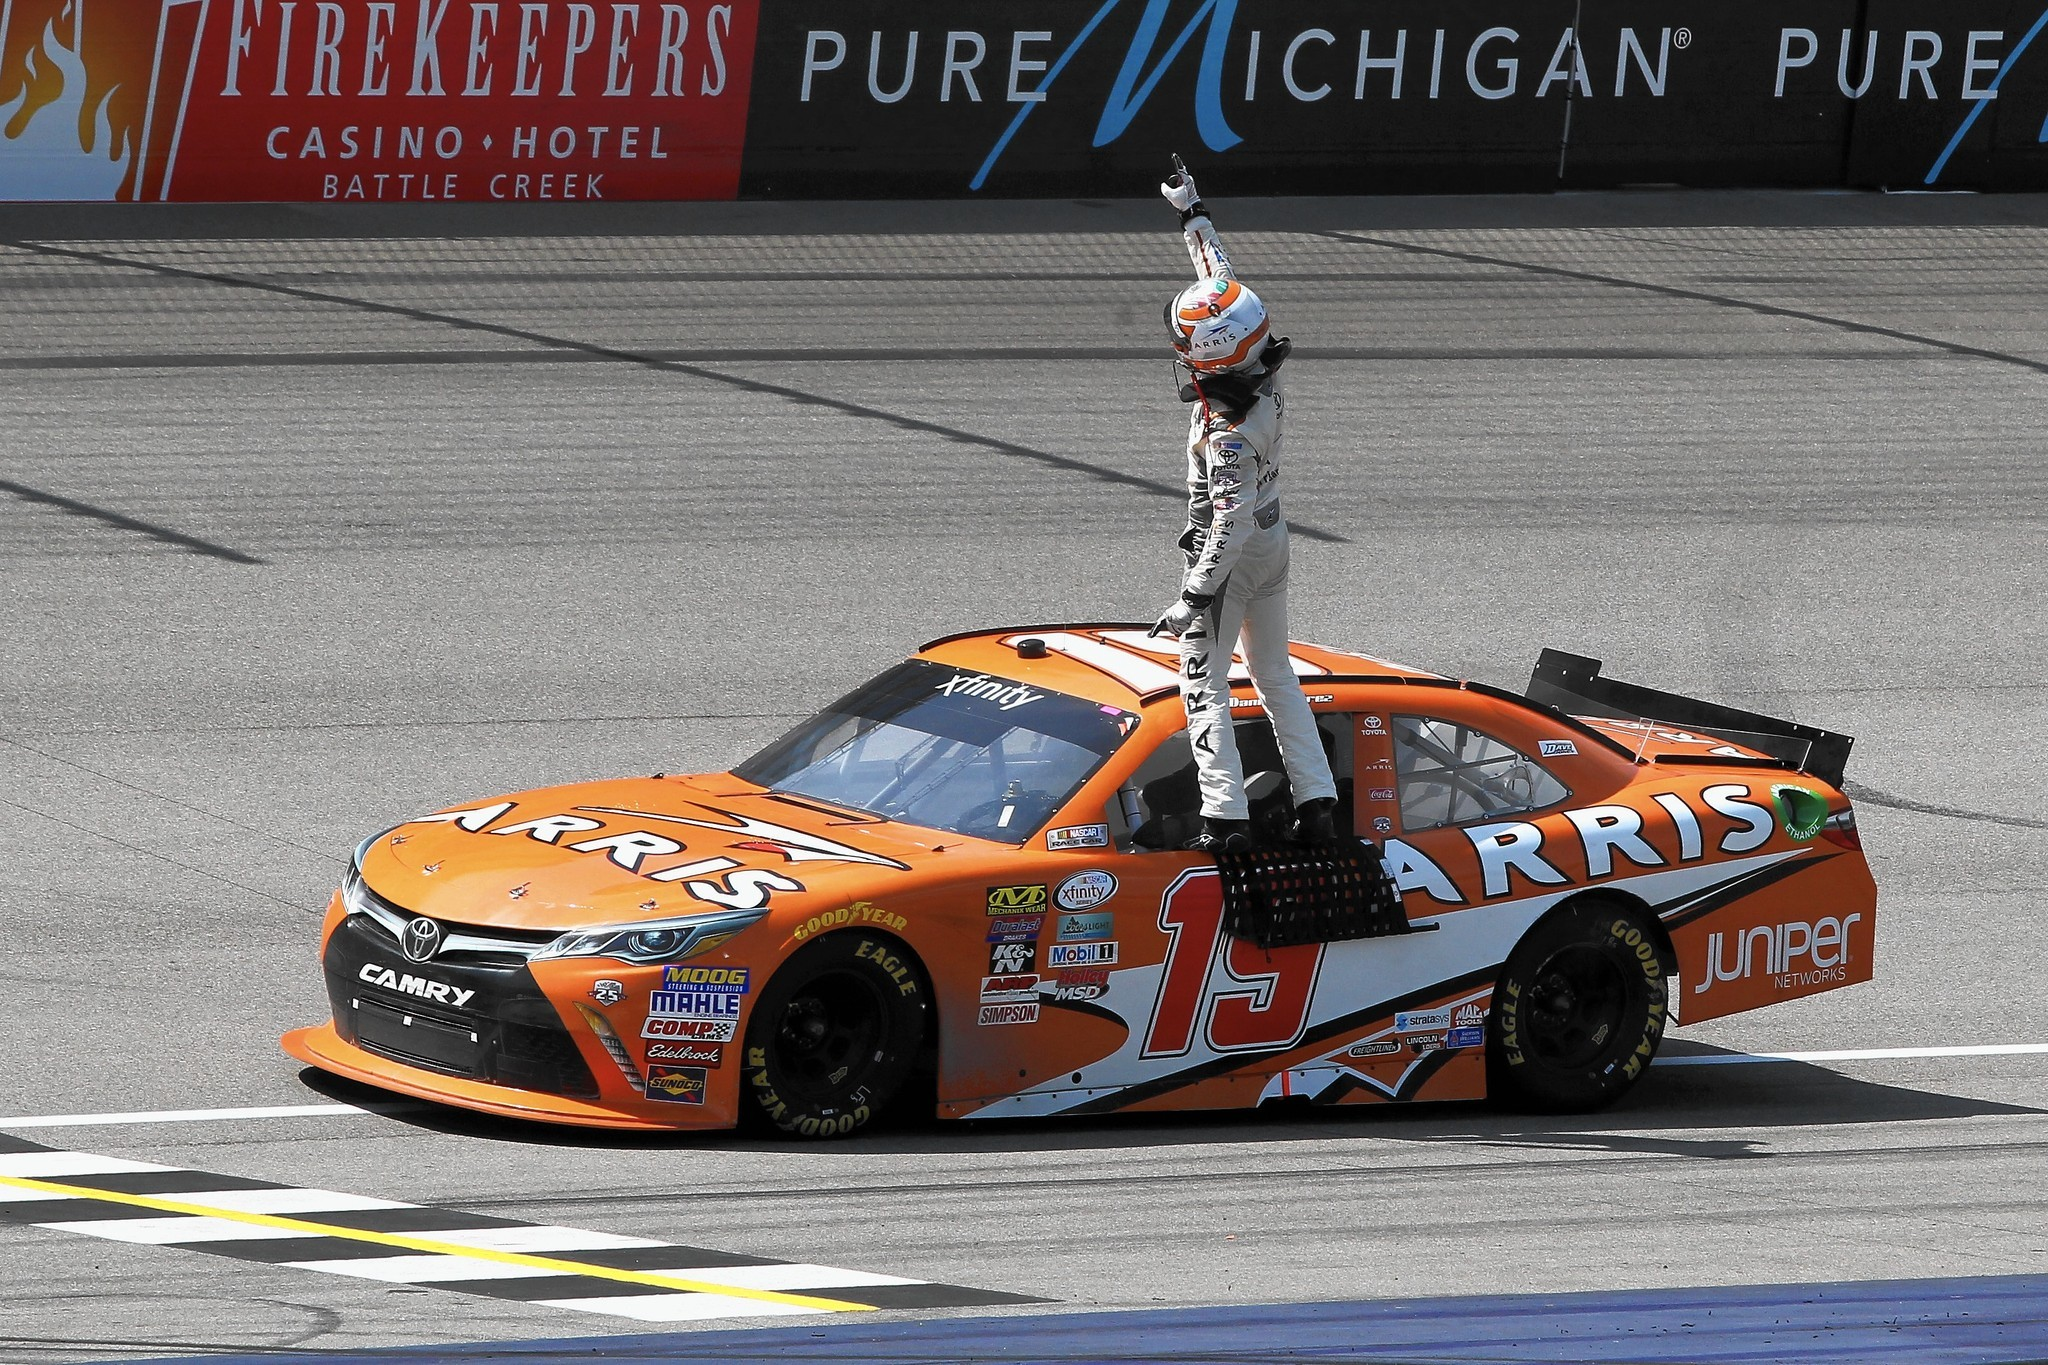 Suarez Becomes 1st Mexican To Win NASCAR National Race